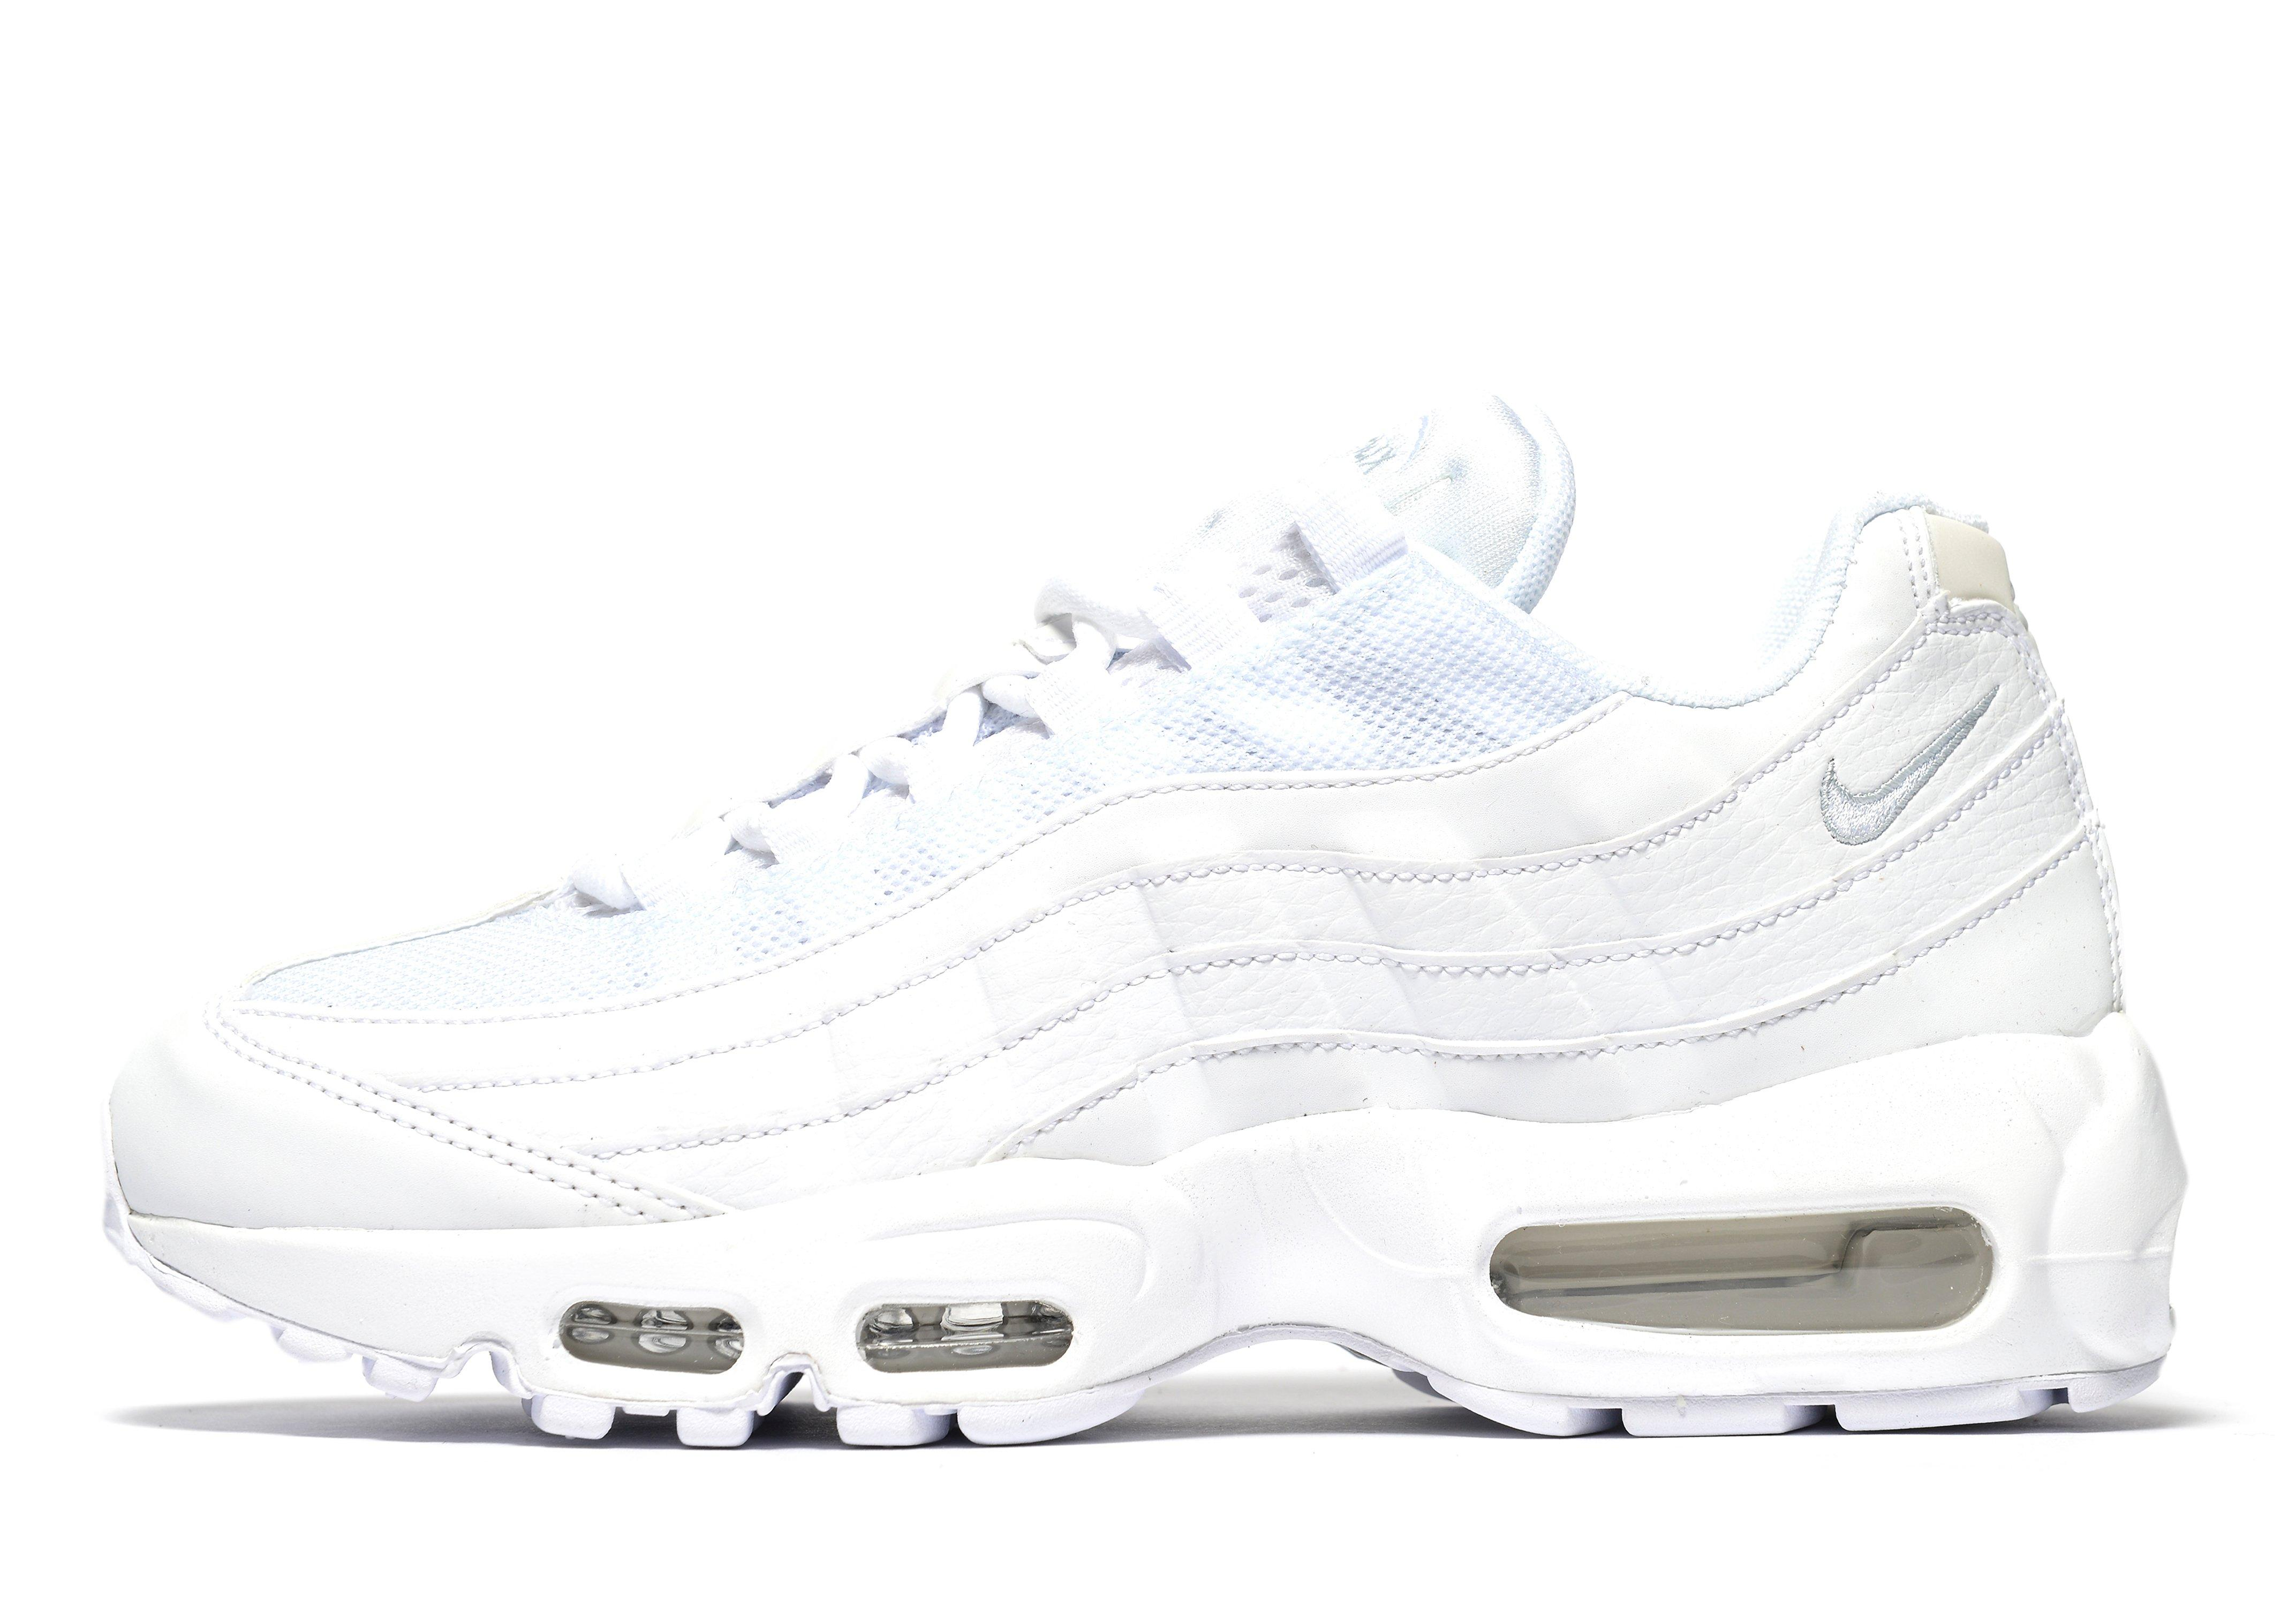 nike air max 95 all white women's nmd